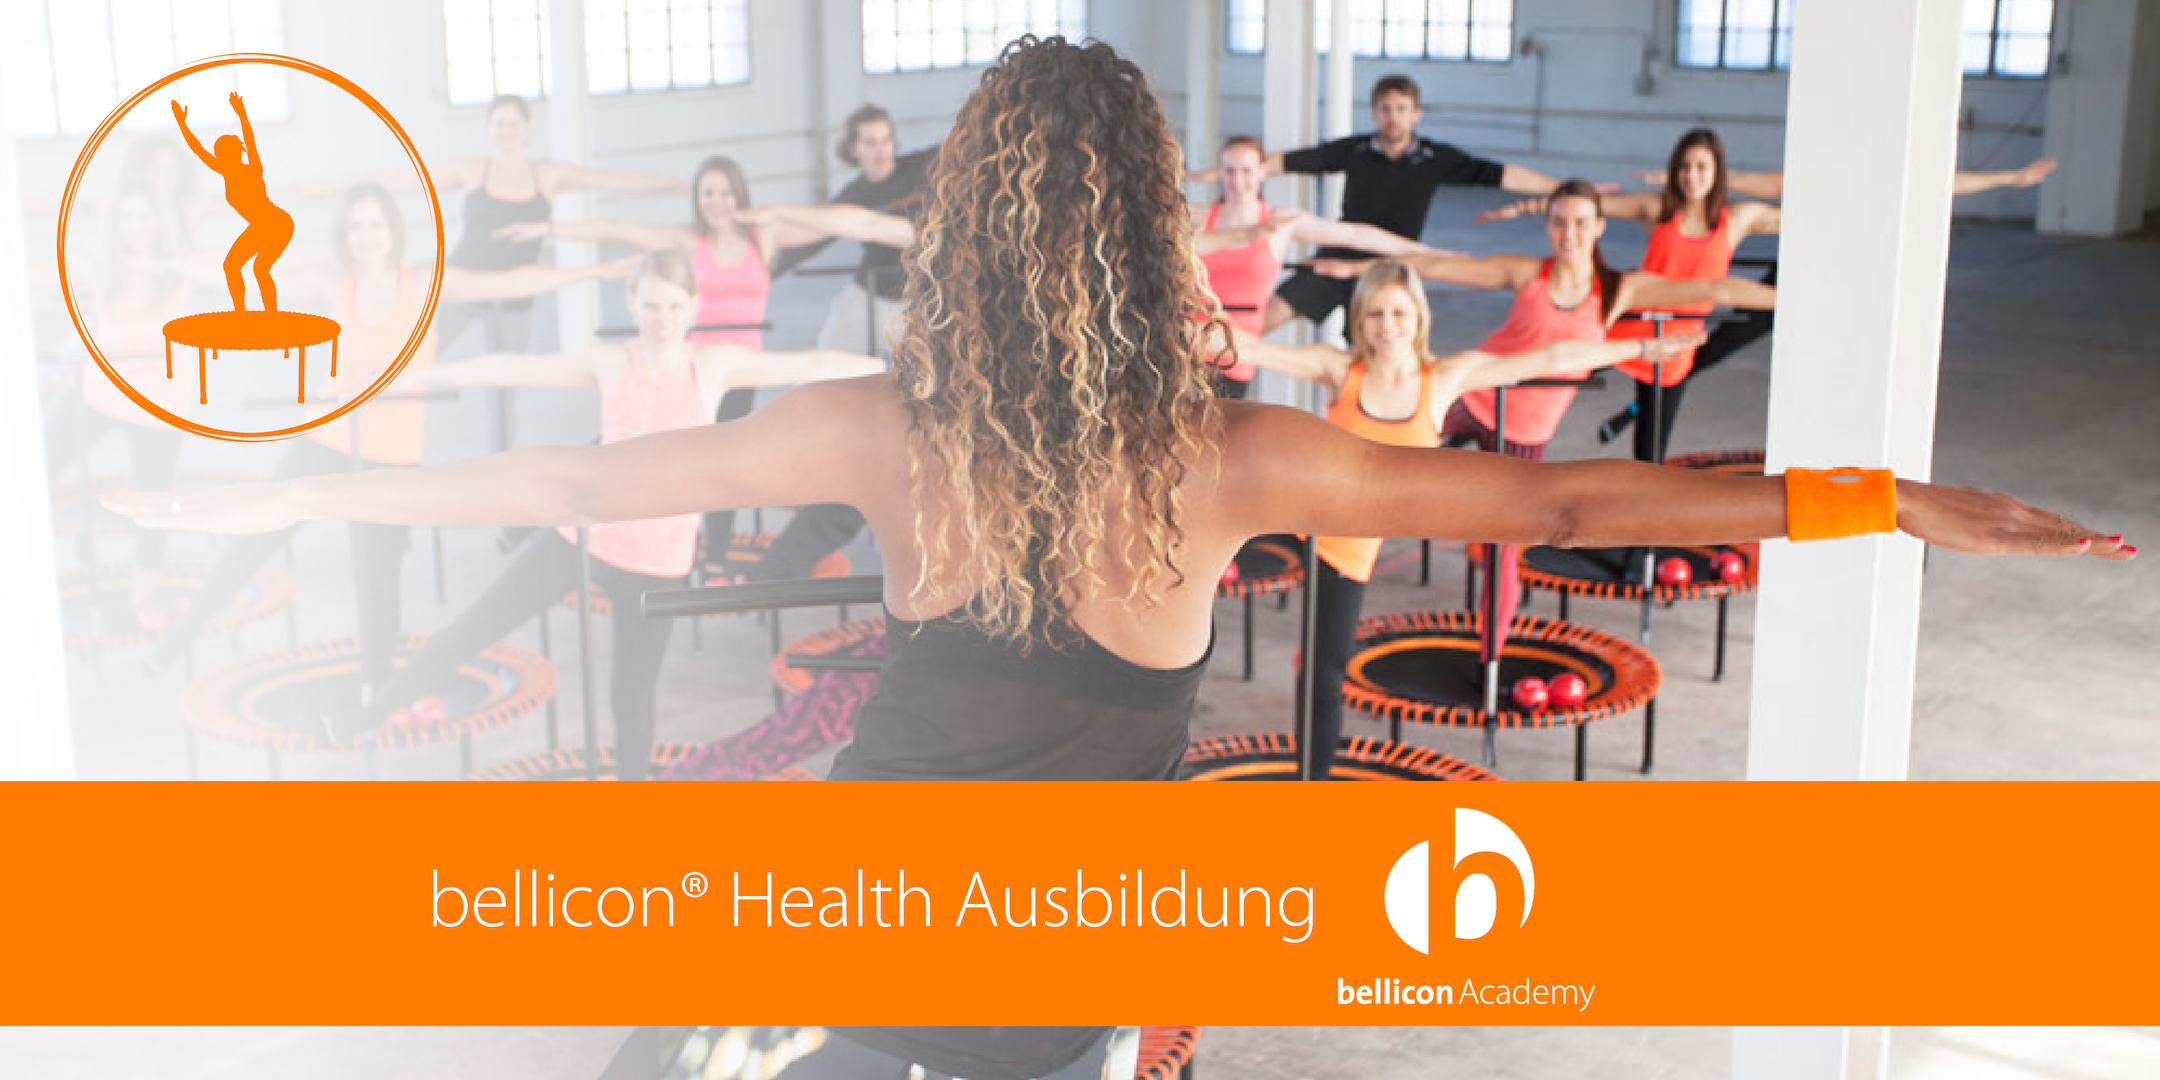 bellicon HEALTH Trainerausbildung (Berlin)